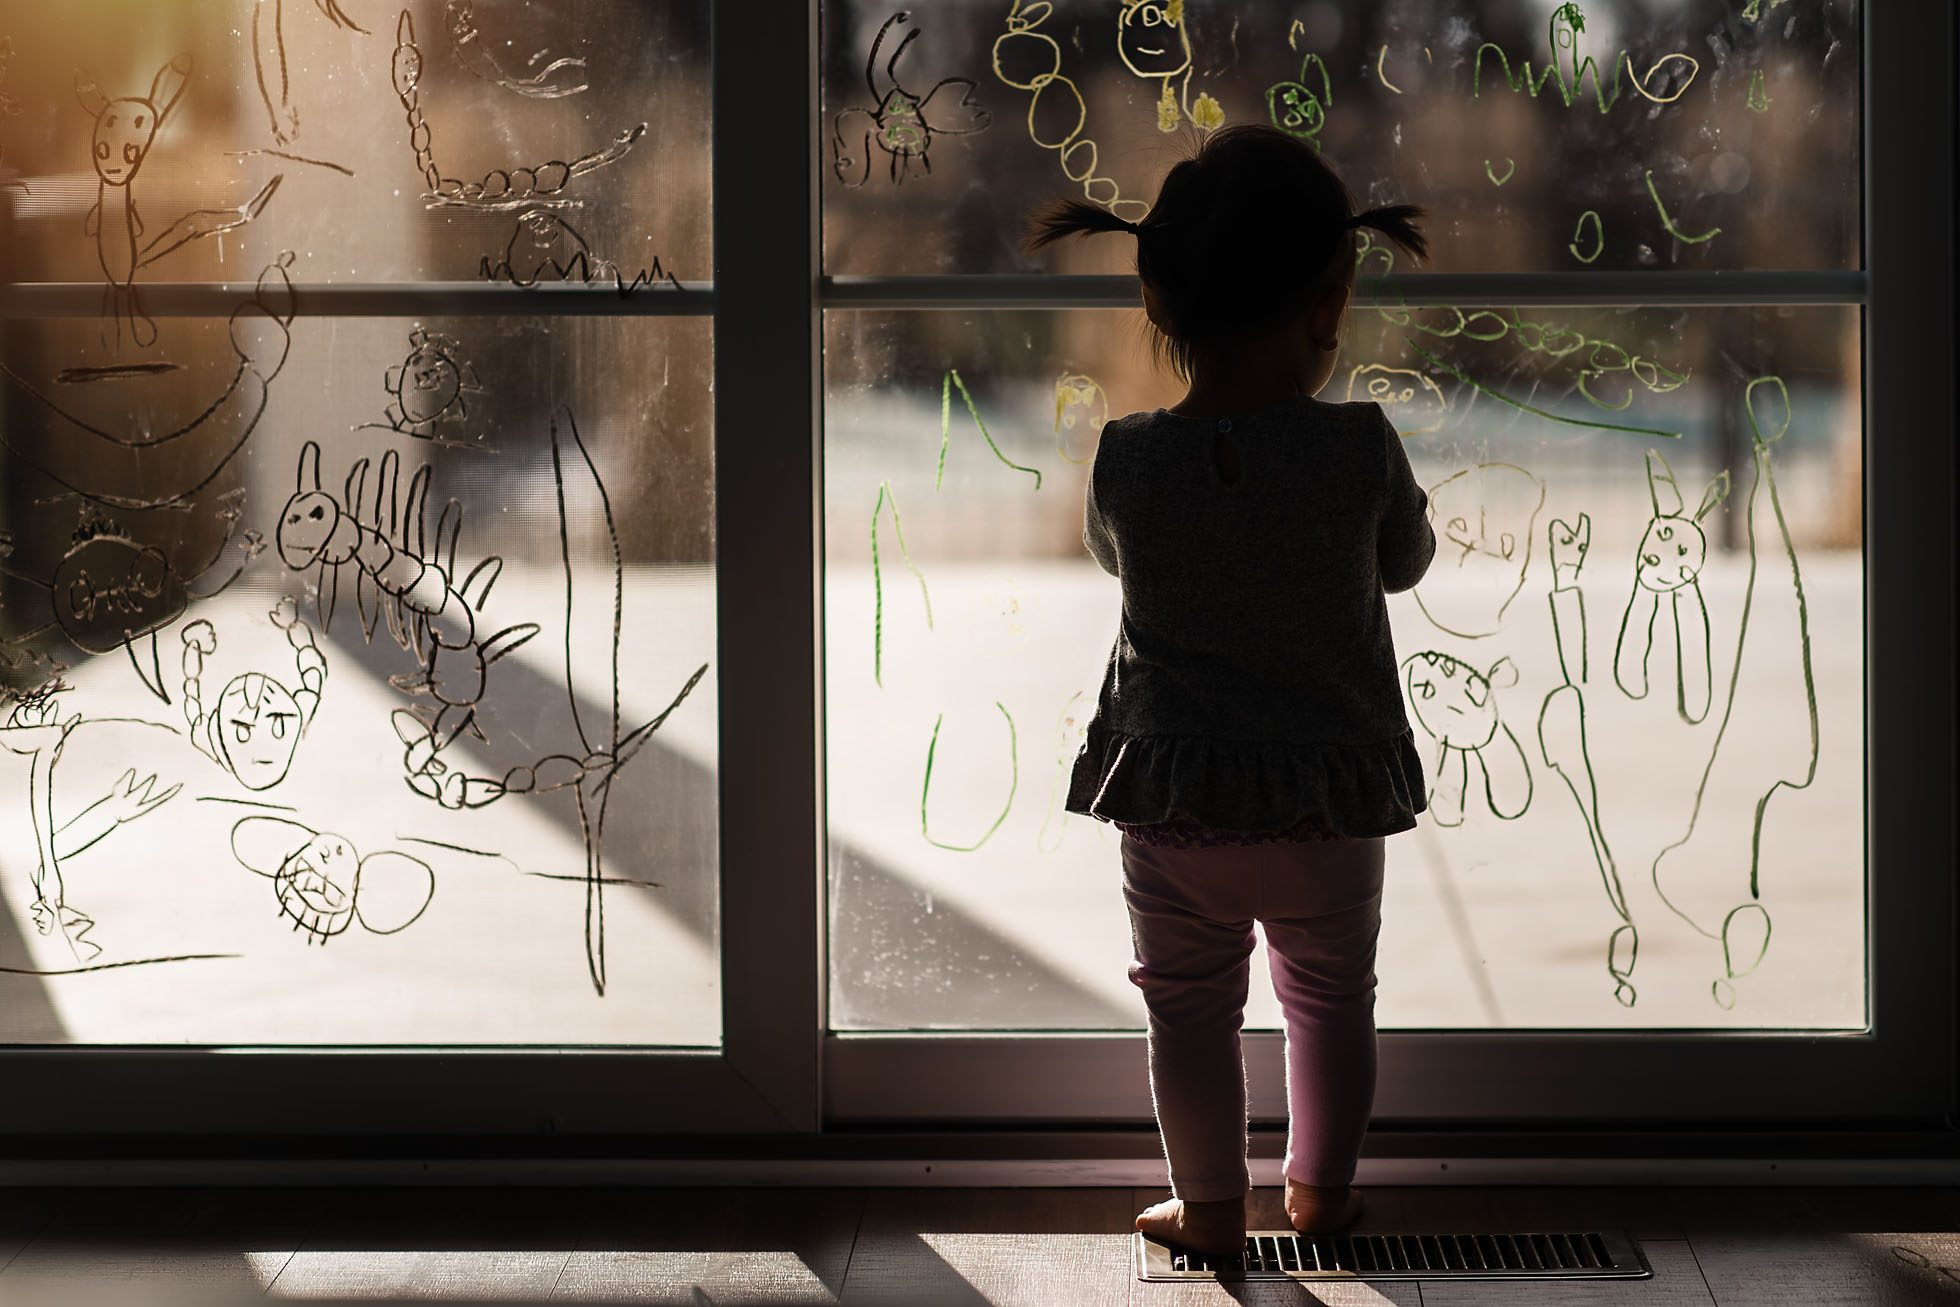 Modern pokemon hieroglyphics on glass door with toddler girl silhouette, Lifestyle photography by Thao Lai of donthaophotography.com